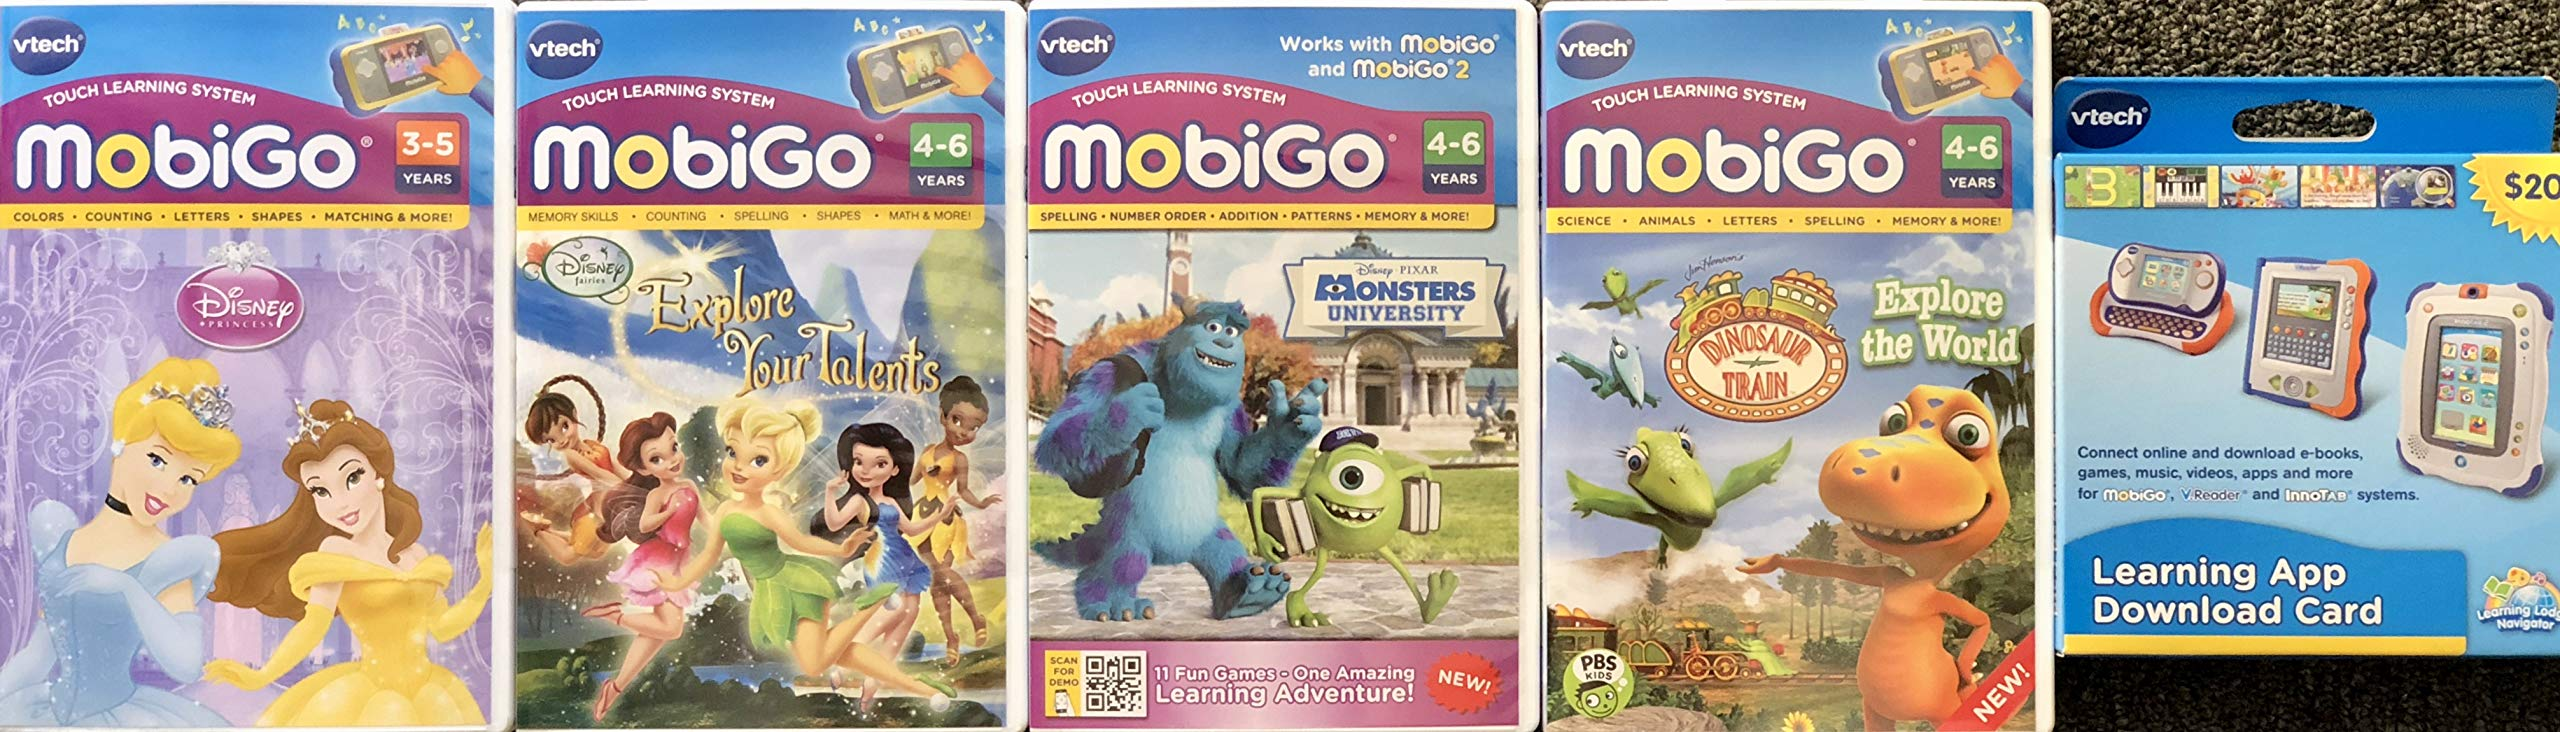 MobiGo Vtech Touch Learning System Bundle Includes: 4X Games - Disney Fairies, Disney Princess, Dinosaur Train, Monsters University & $20 Download Card (Bundle One) by MobiGo (Image #1)